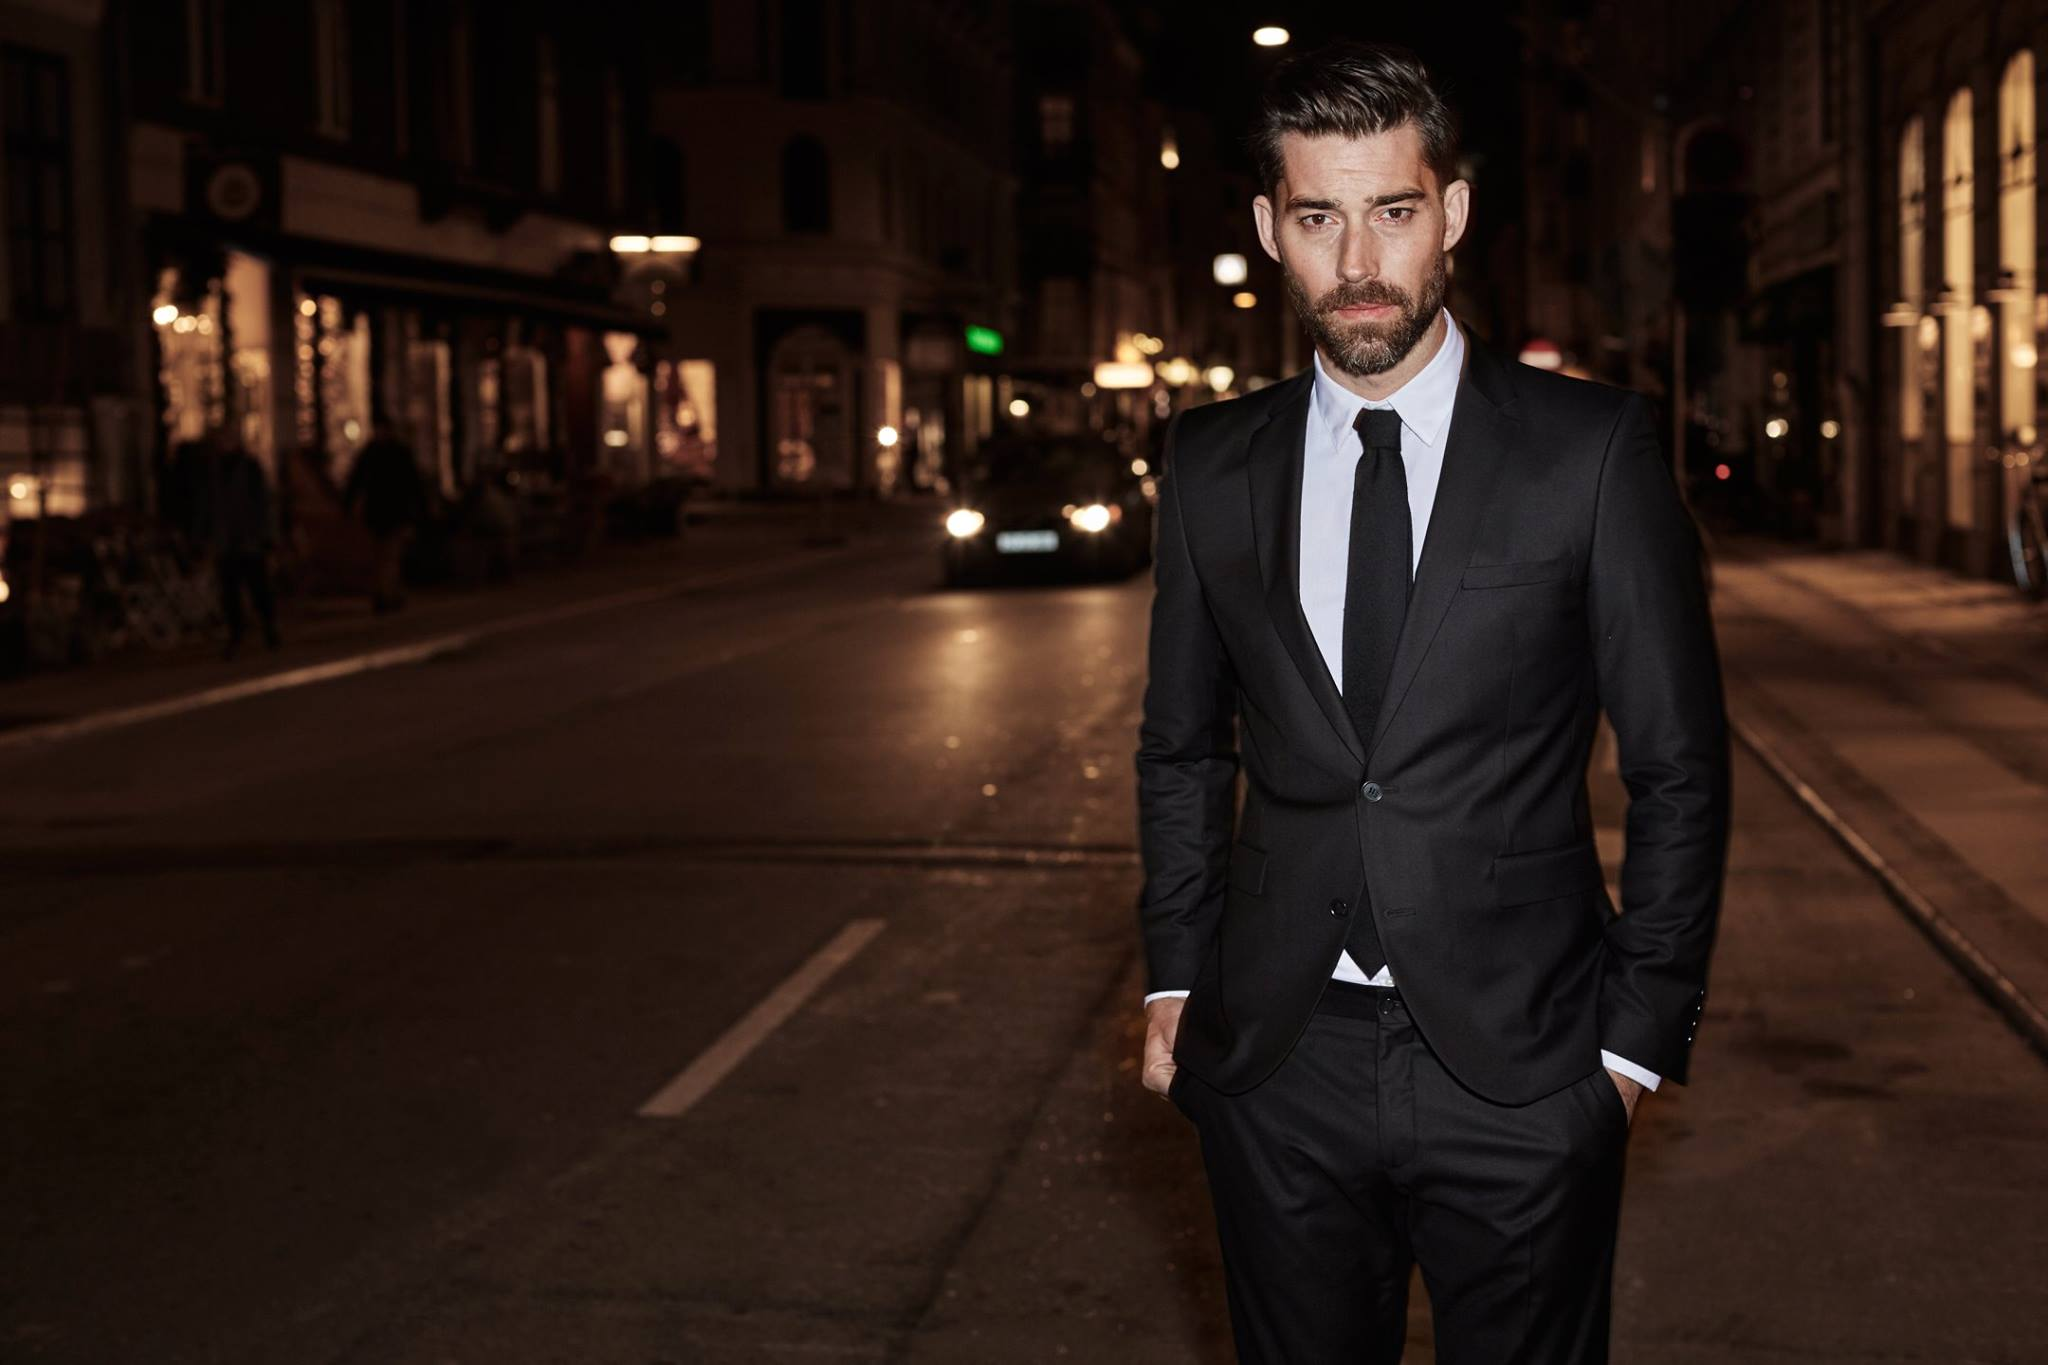 As the New Year approaches, so does the new you. We can't promise you'll stick to that gym renewal or throw that bag of sweets away, but what we can do is help you find yourself through your suit. We've come up with five different suit men worth identifying with to take you into 2015 as the styled, new man you're meant to be. SHOP ►► bit.ly/SUITS-NEW-YEAR